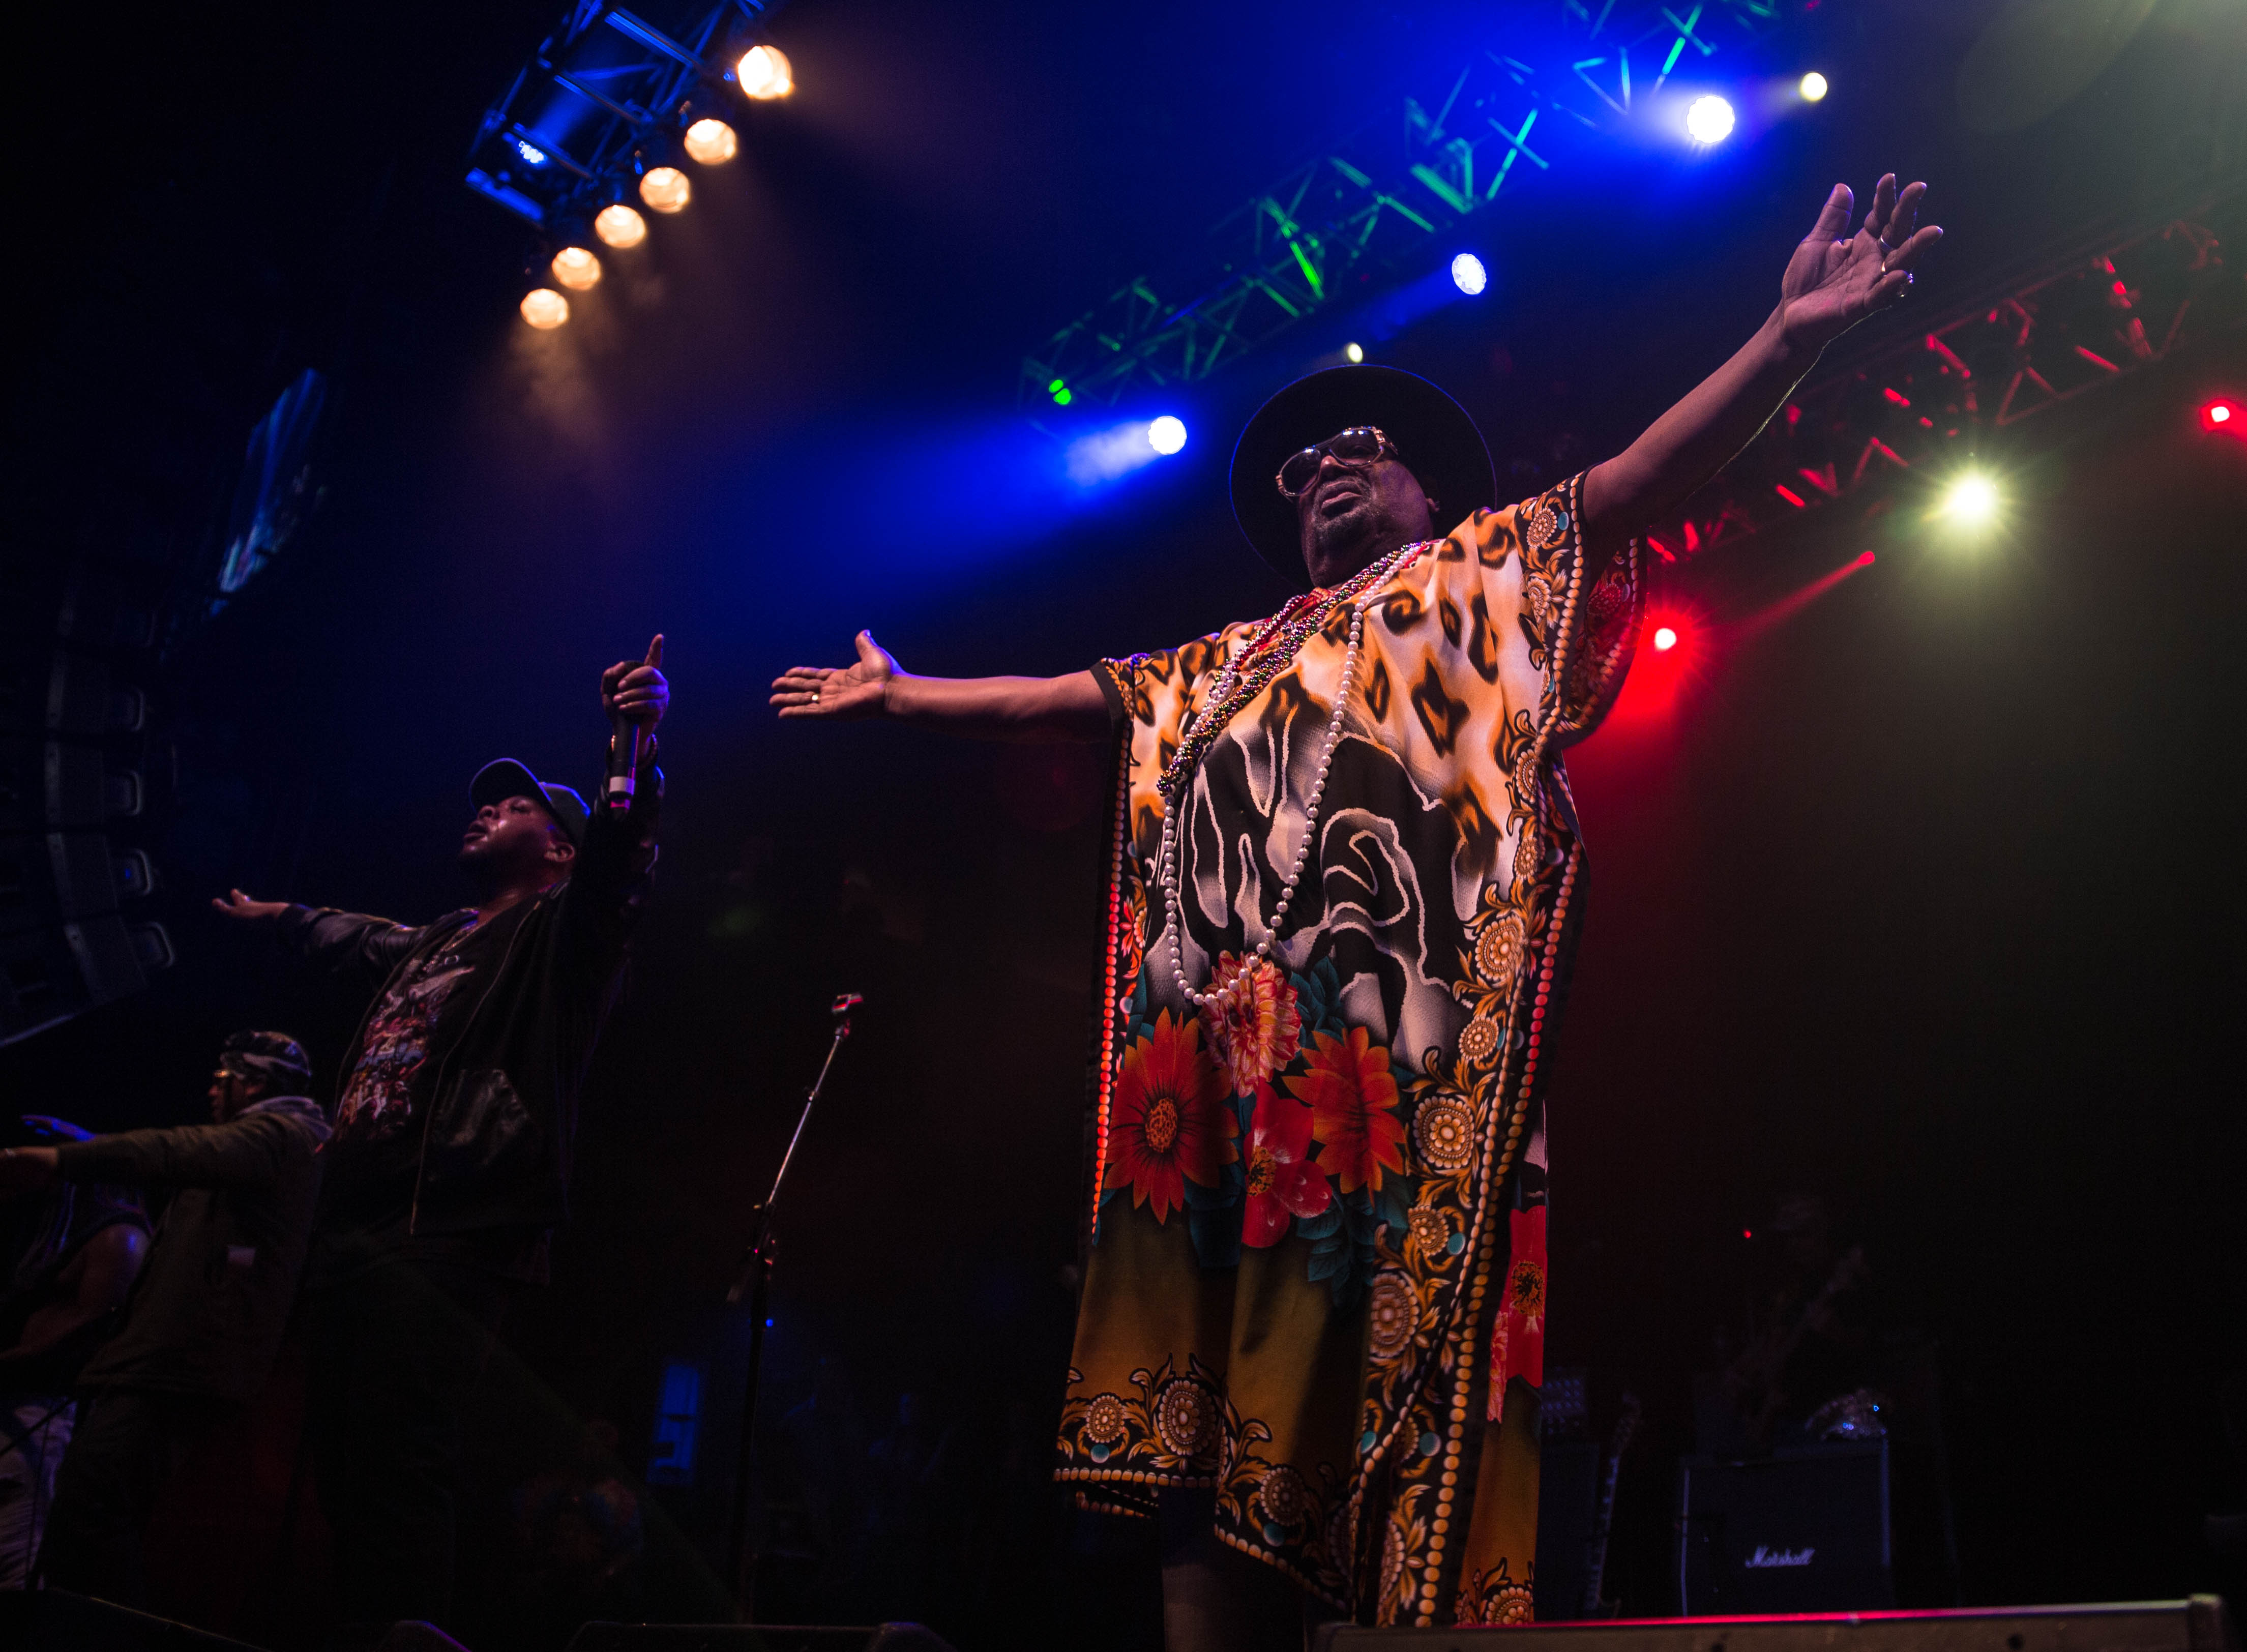 George Clinton Leads Parliament Funkadelic In Colorful